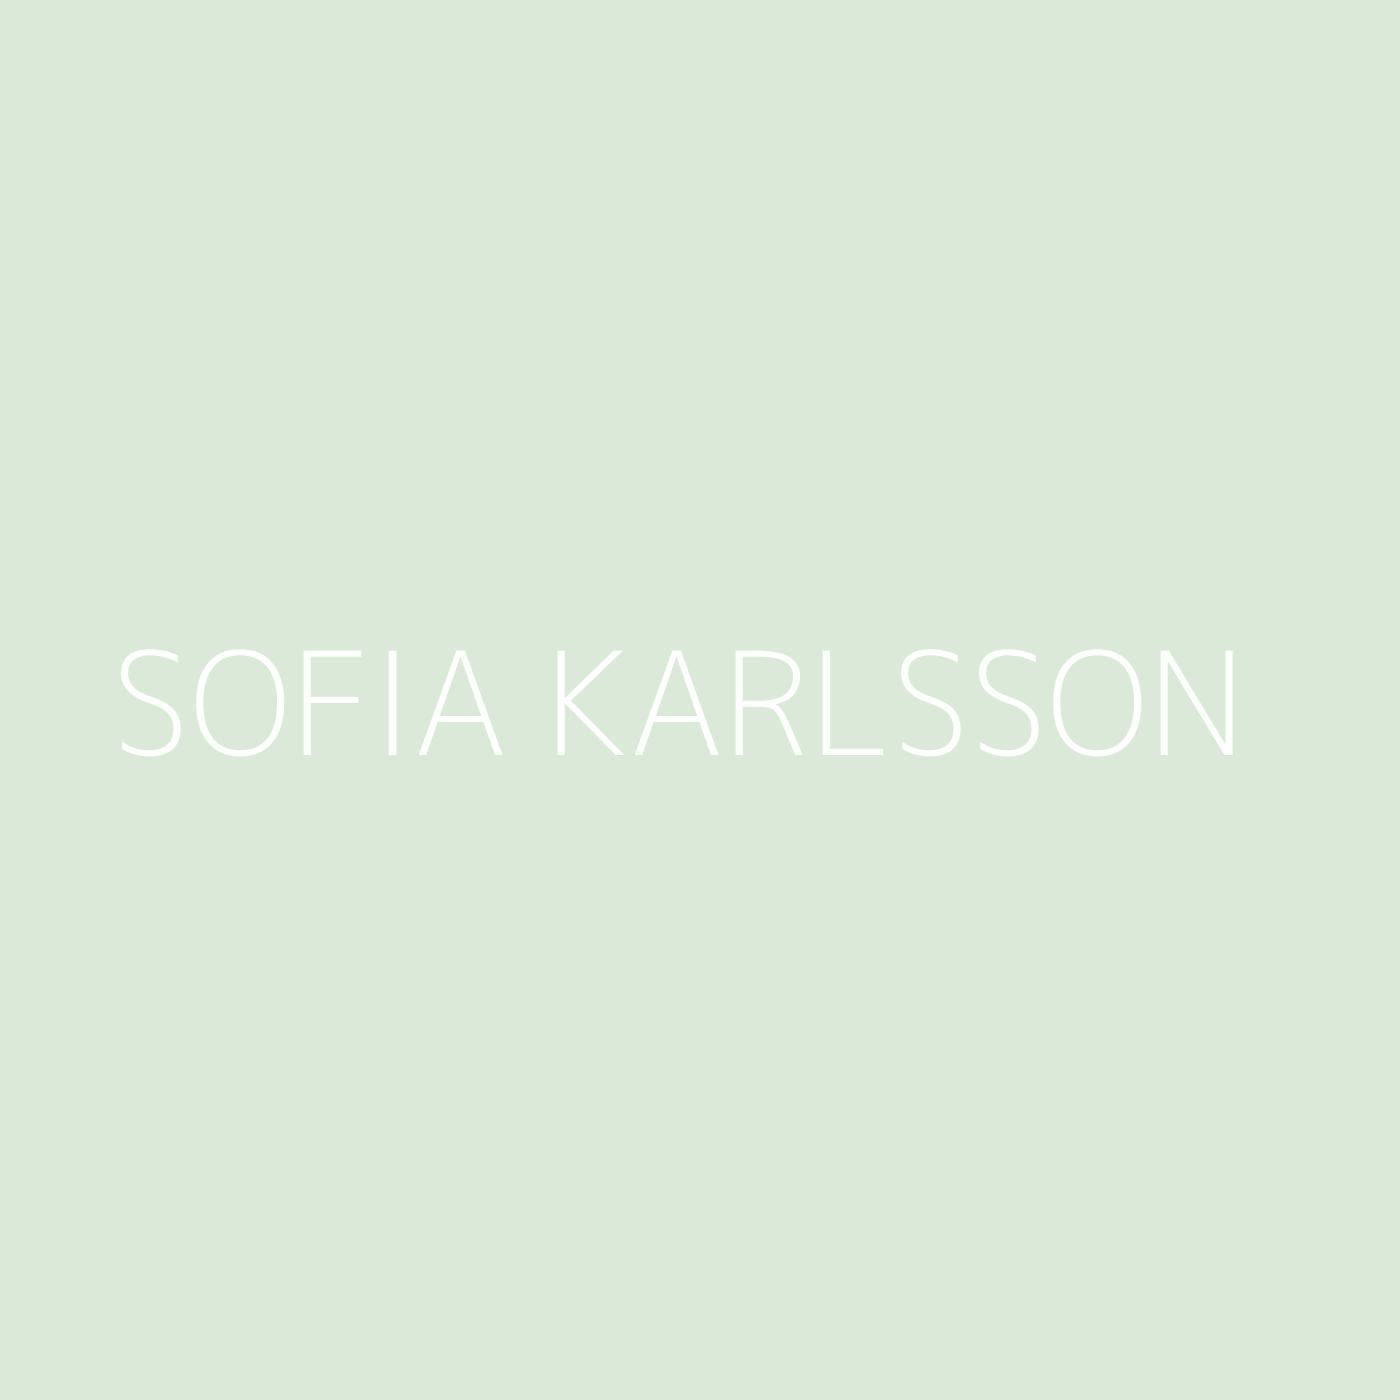 Sofia Karlsson Playlist Artwork